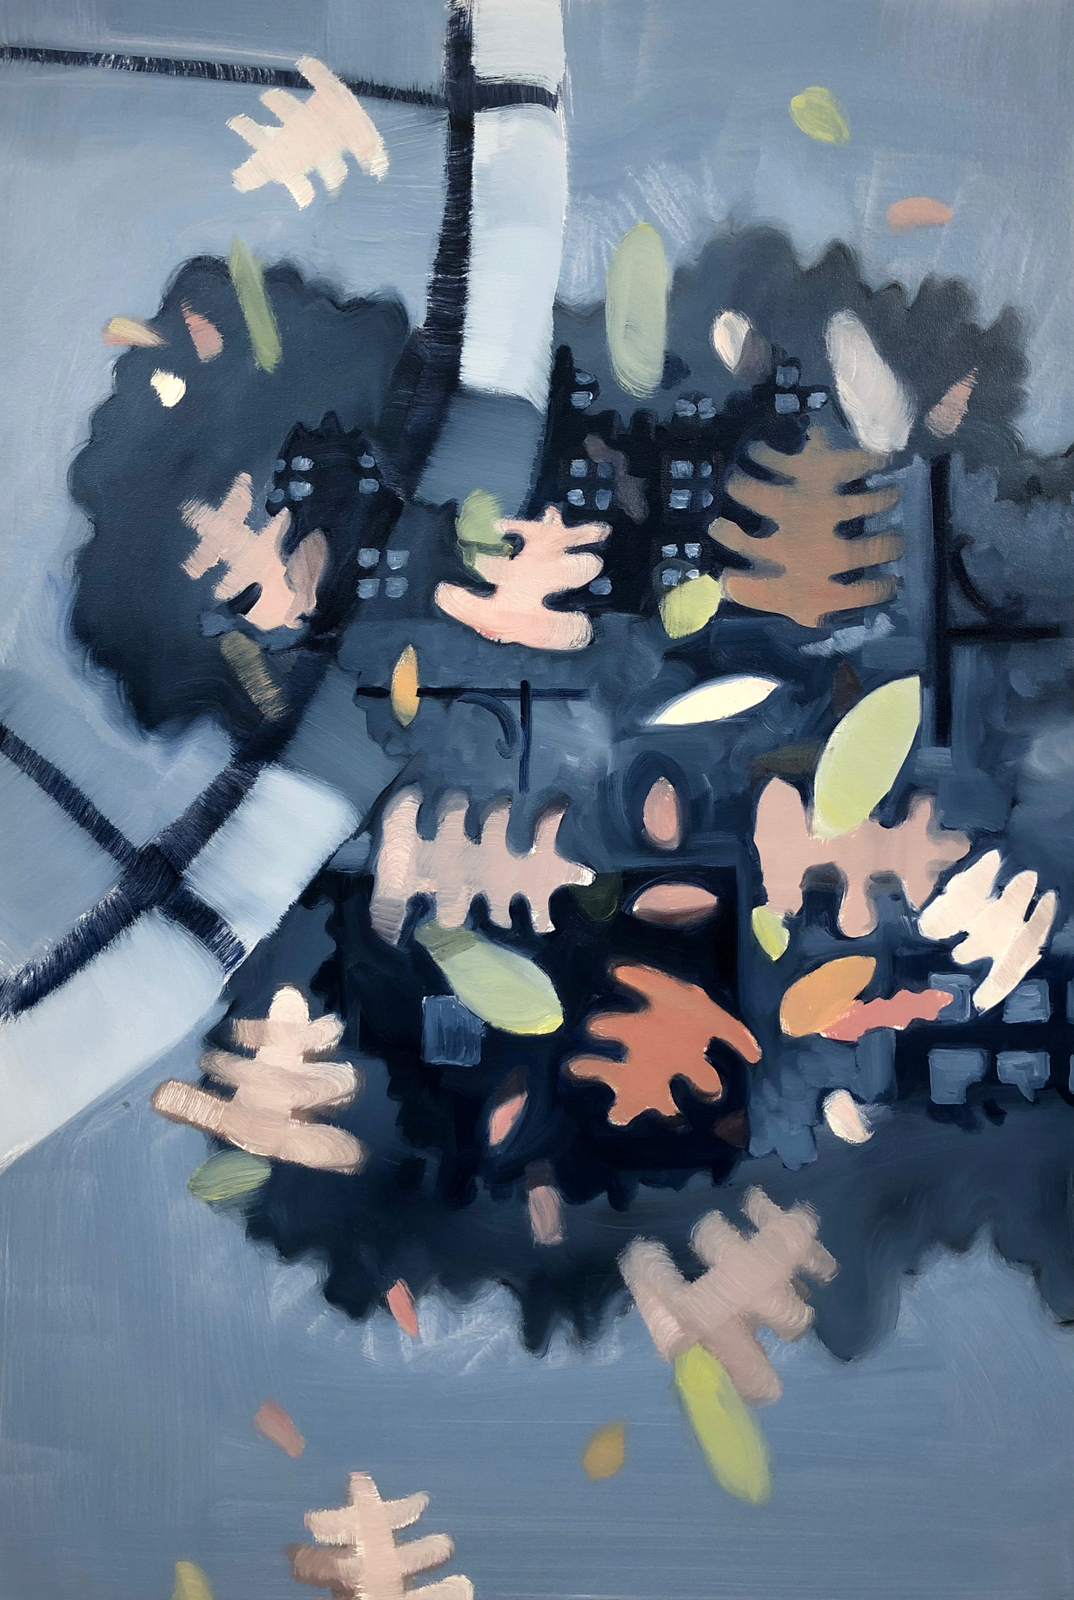 Leaf puddle city - 2018 oil on canvas 36x25inch